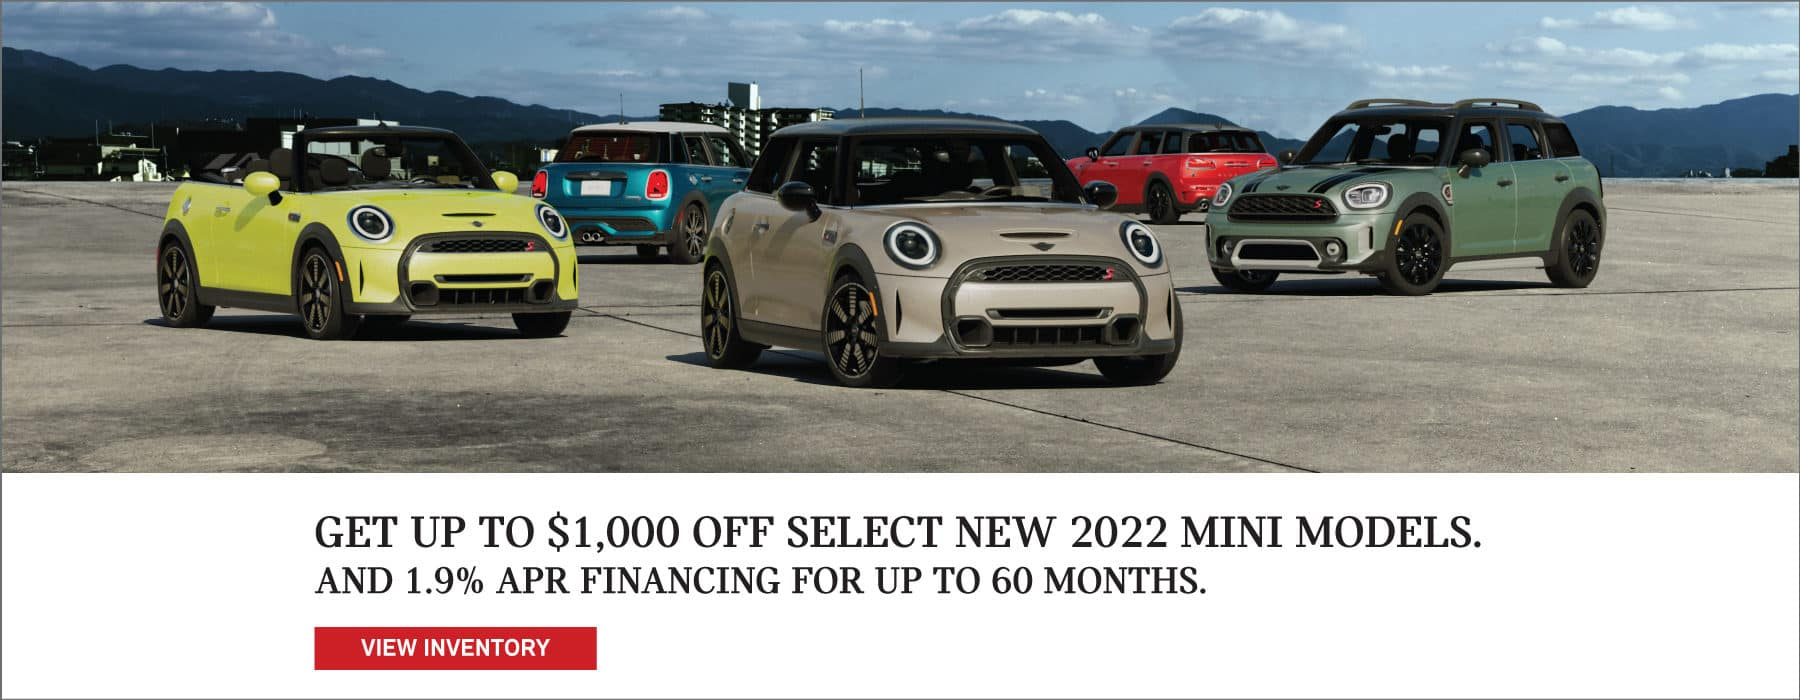 Get up to $1,000 Off select New 2022 MINI Models.